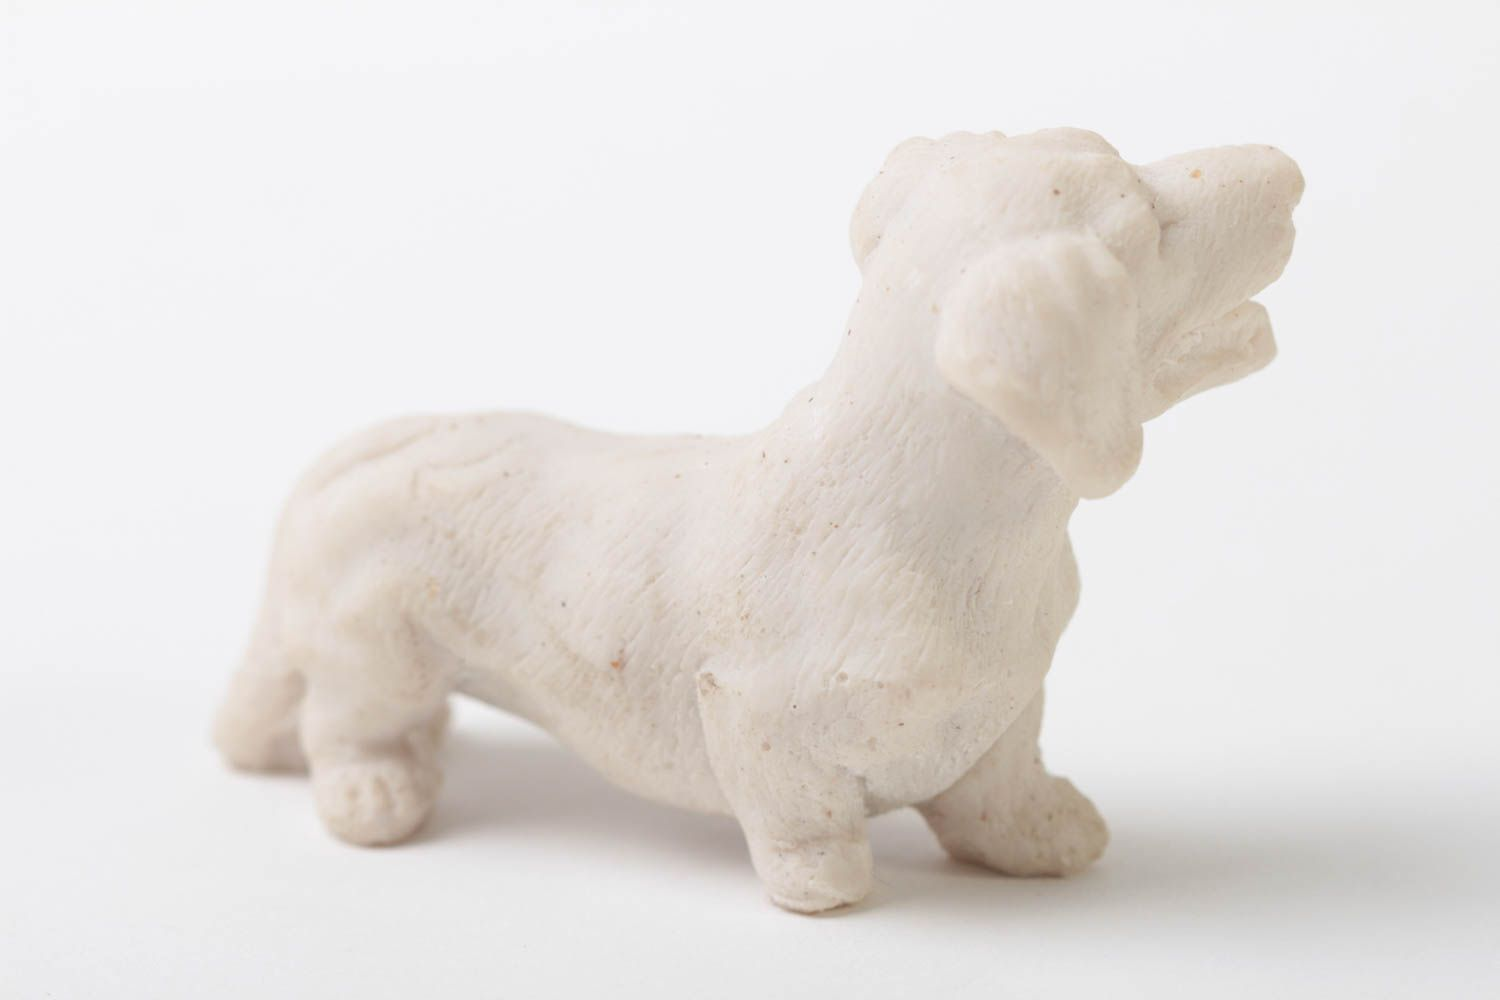 Handmade statuette unusual statuette home decor animal statuette dog figurine  photo 2